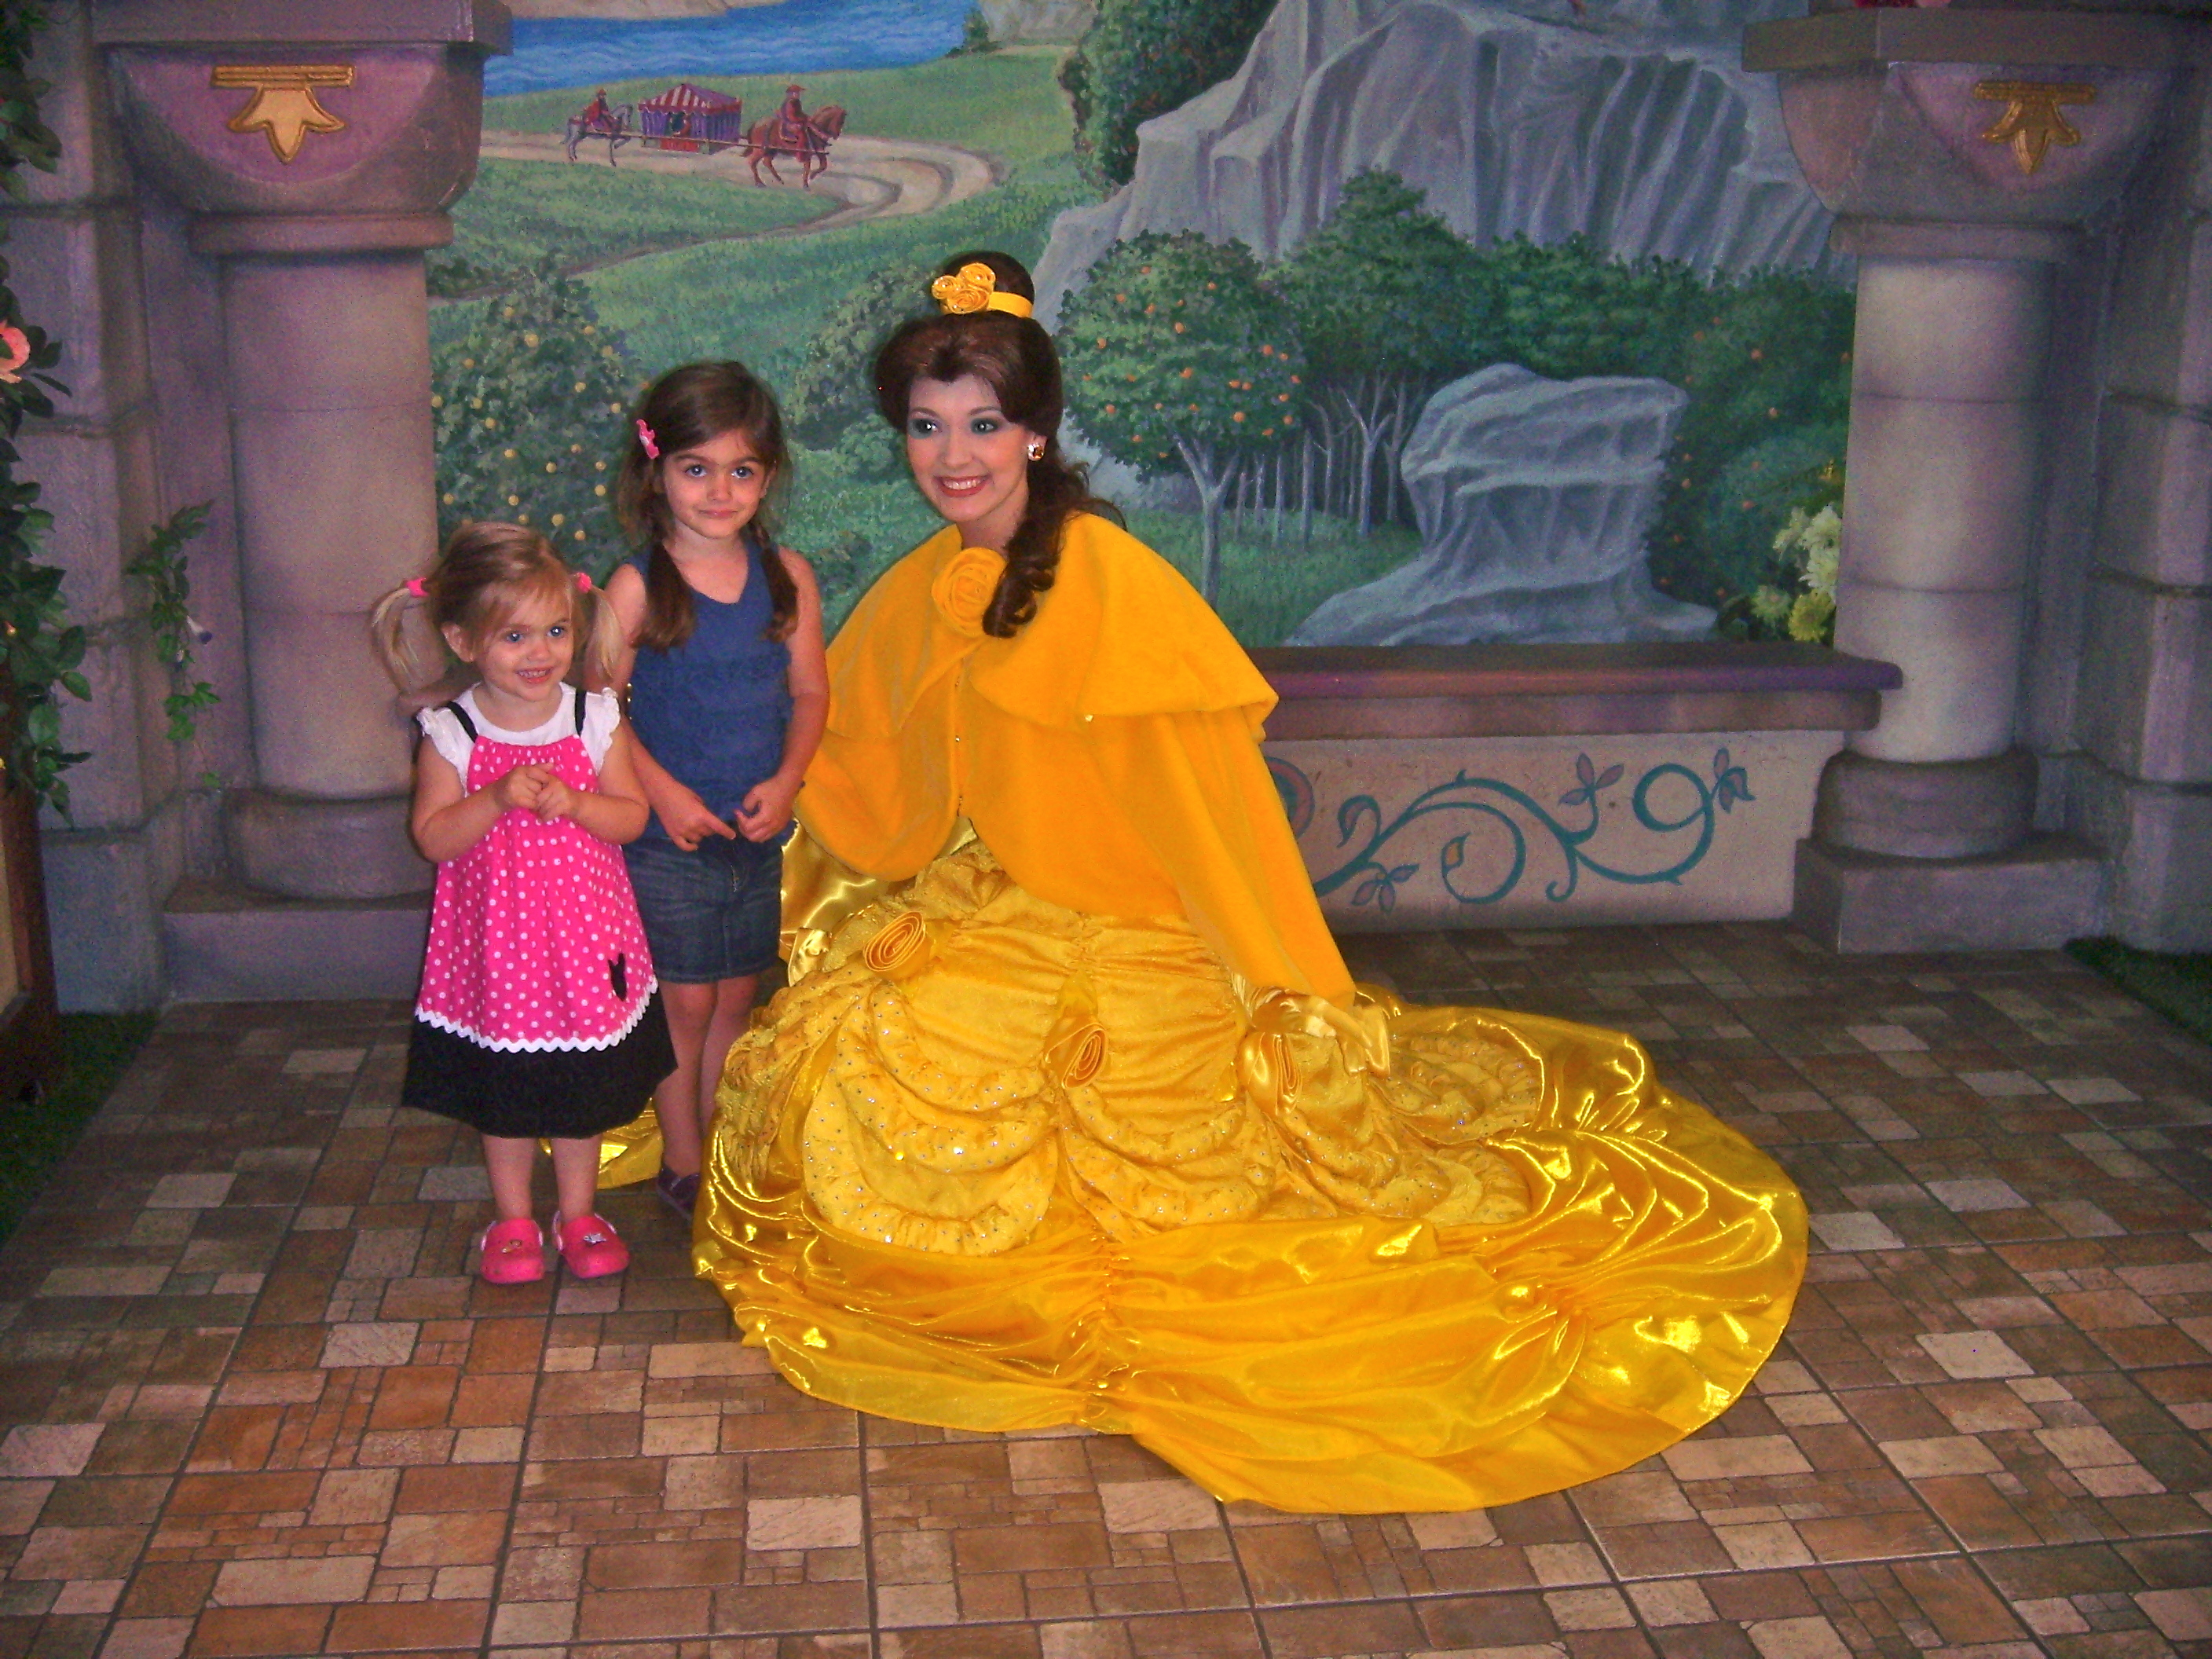 Your Disney vacation has to be perfect, right? Melanie shares how she scored some hard to get dining reservations at Disney World.